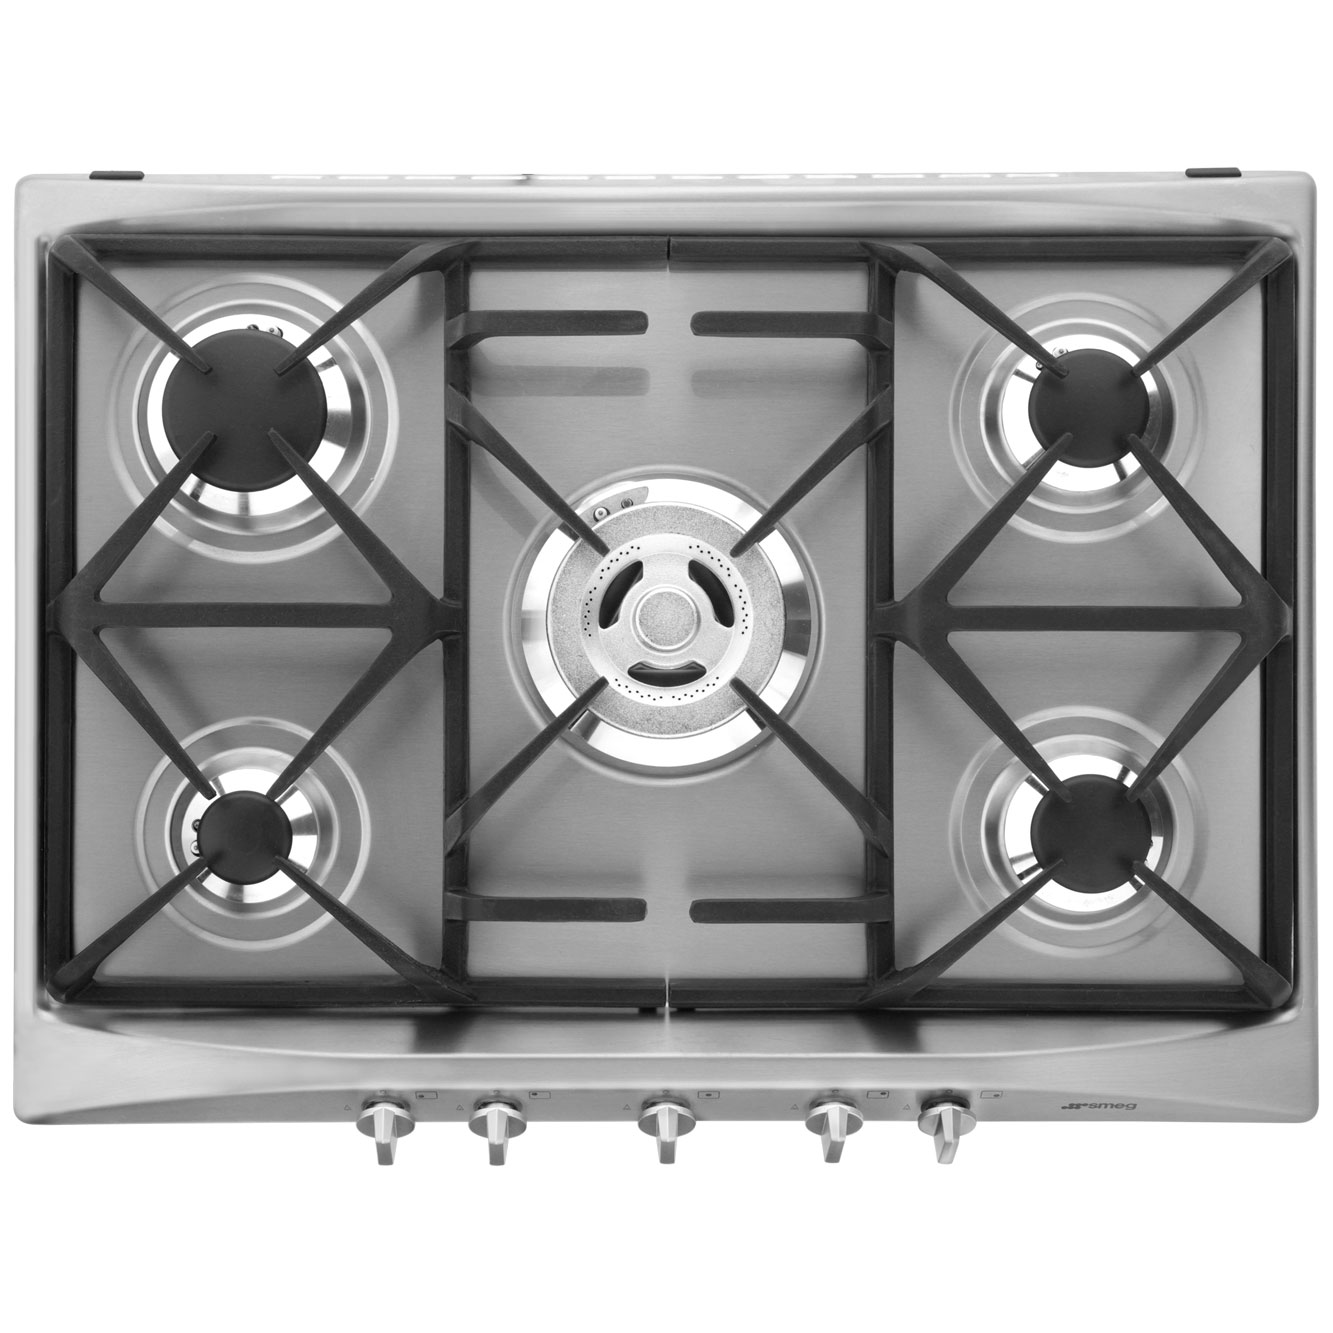 Smeg cucina built in gas hob sr275xgh 5 burners - Cucina a gas smeg ...